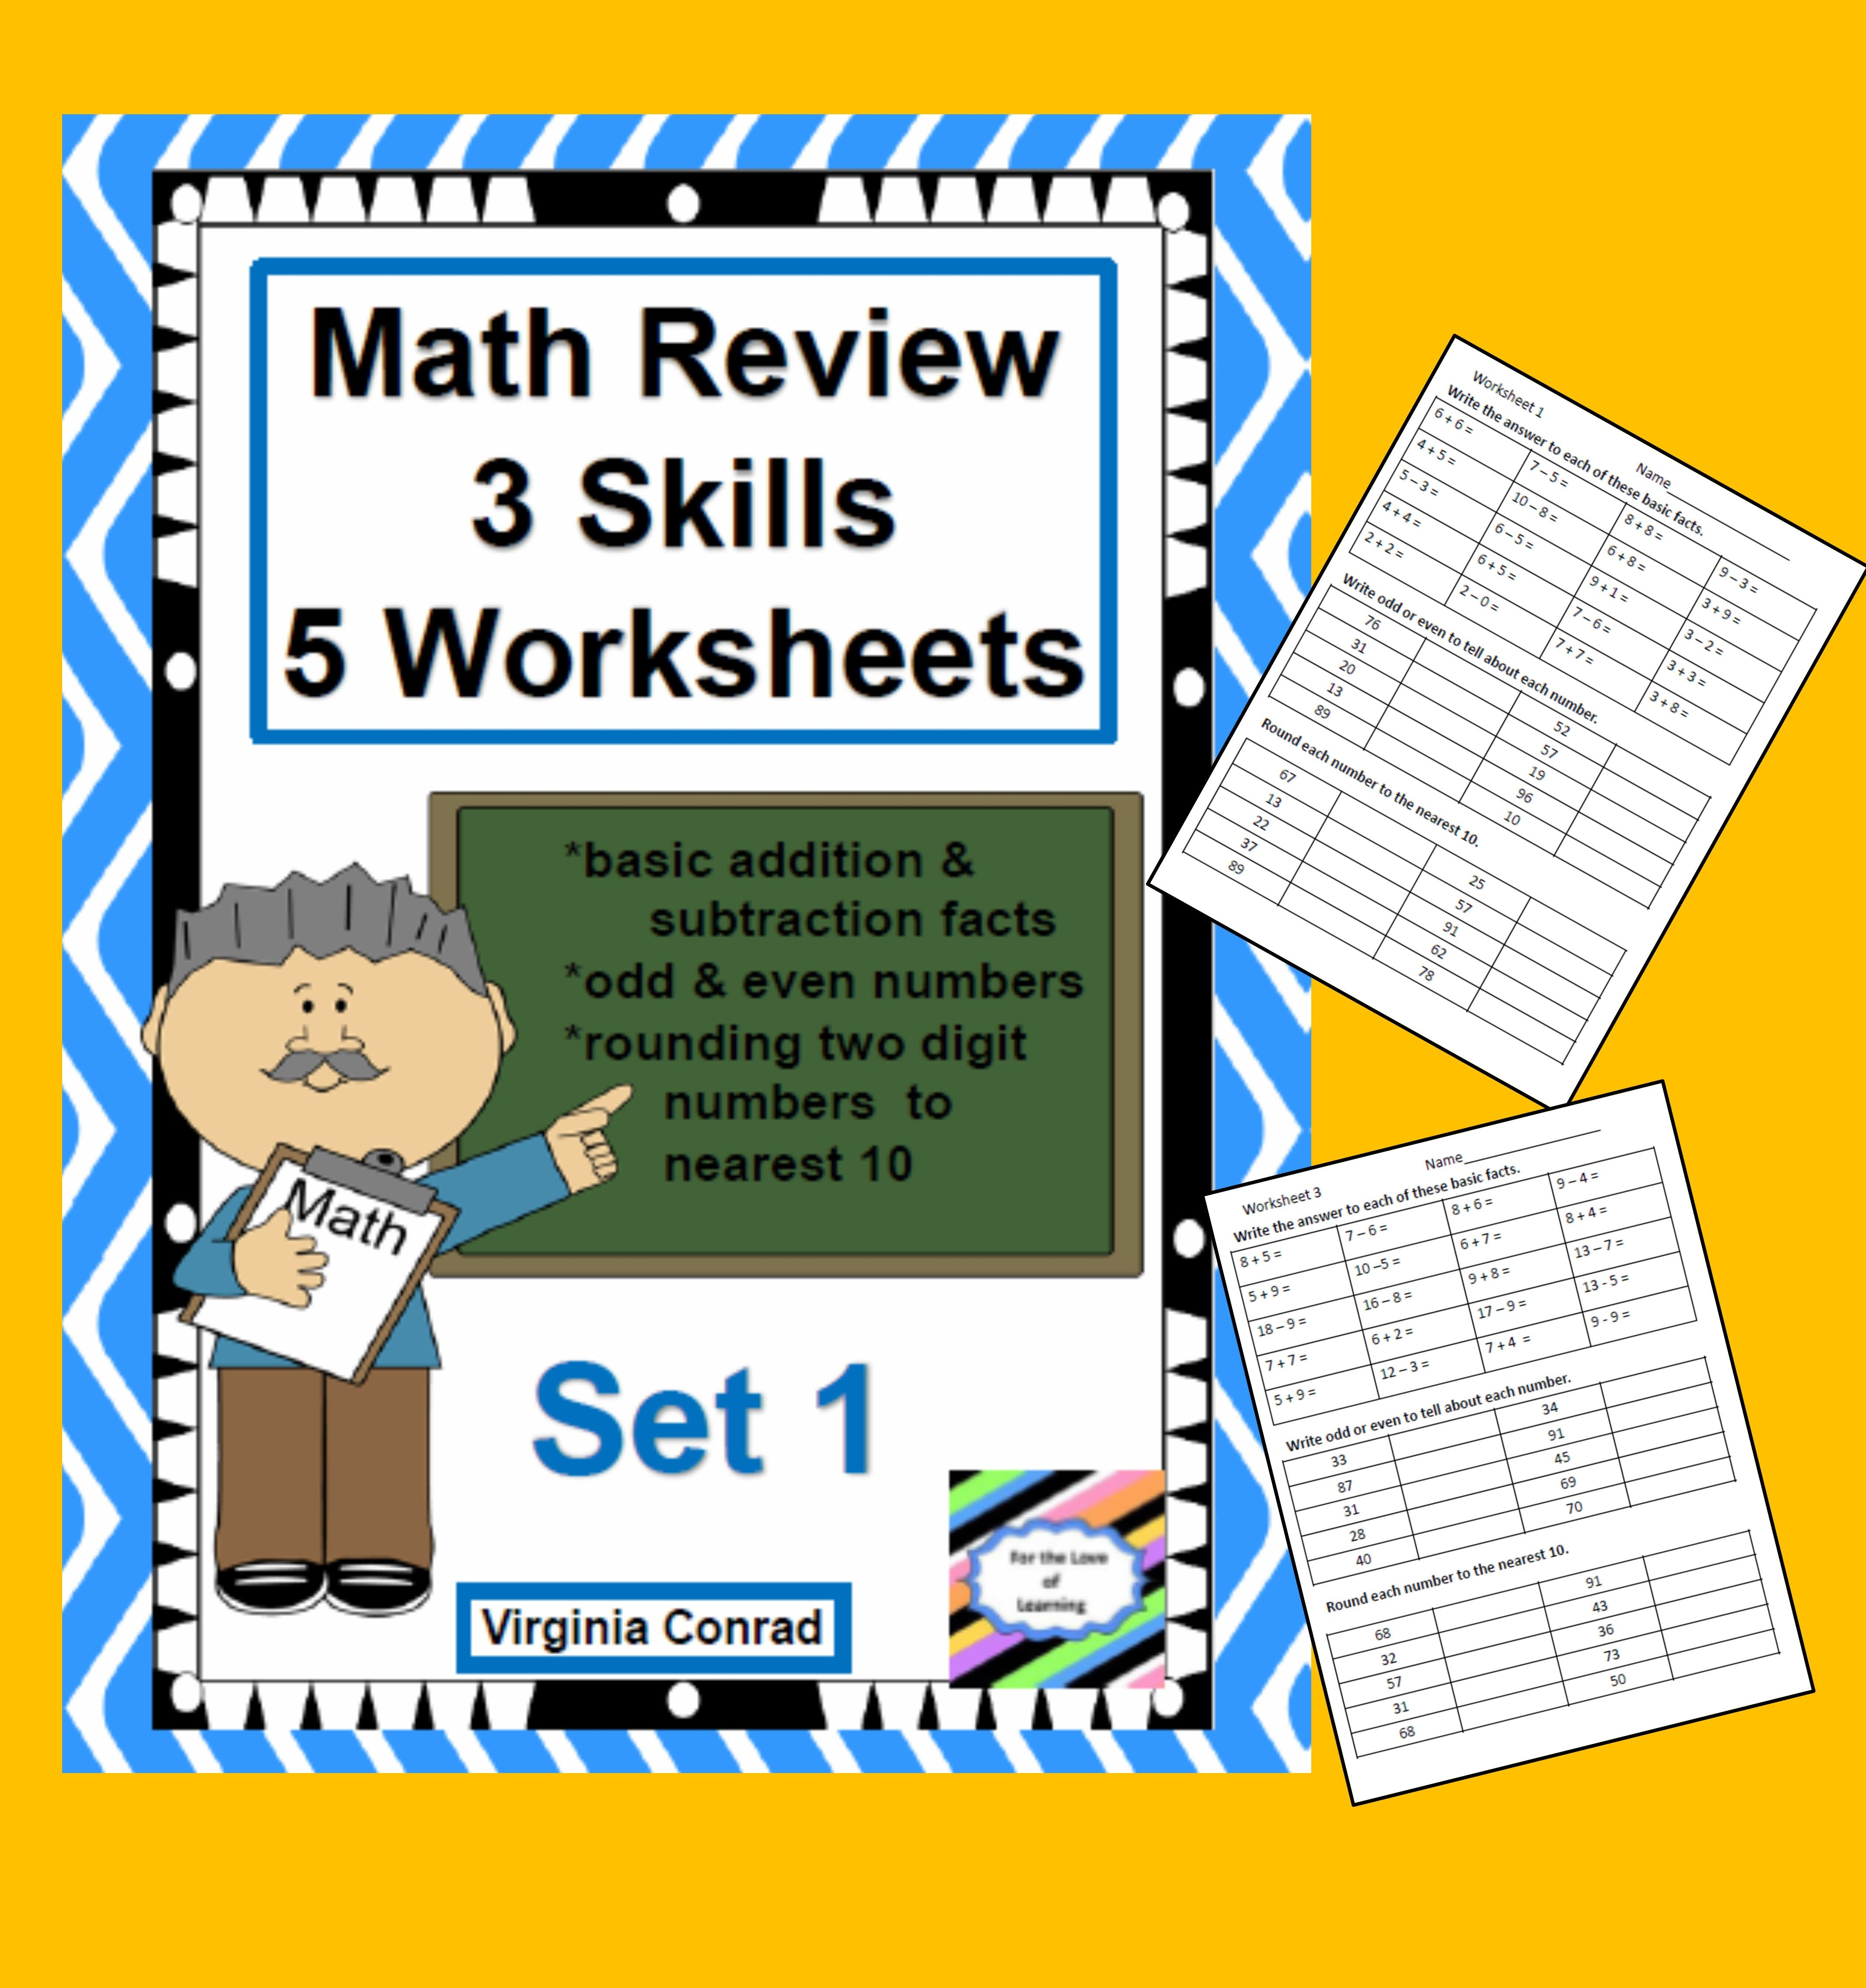 Math Review Worksheets 3 Skills For 5 Days Set 1